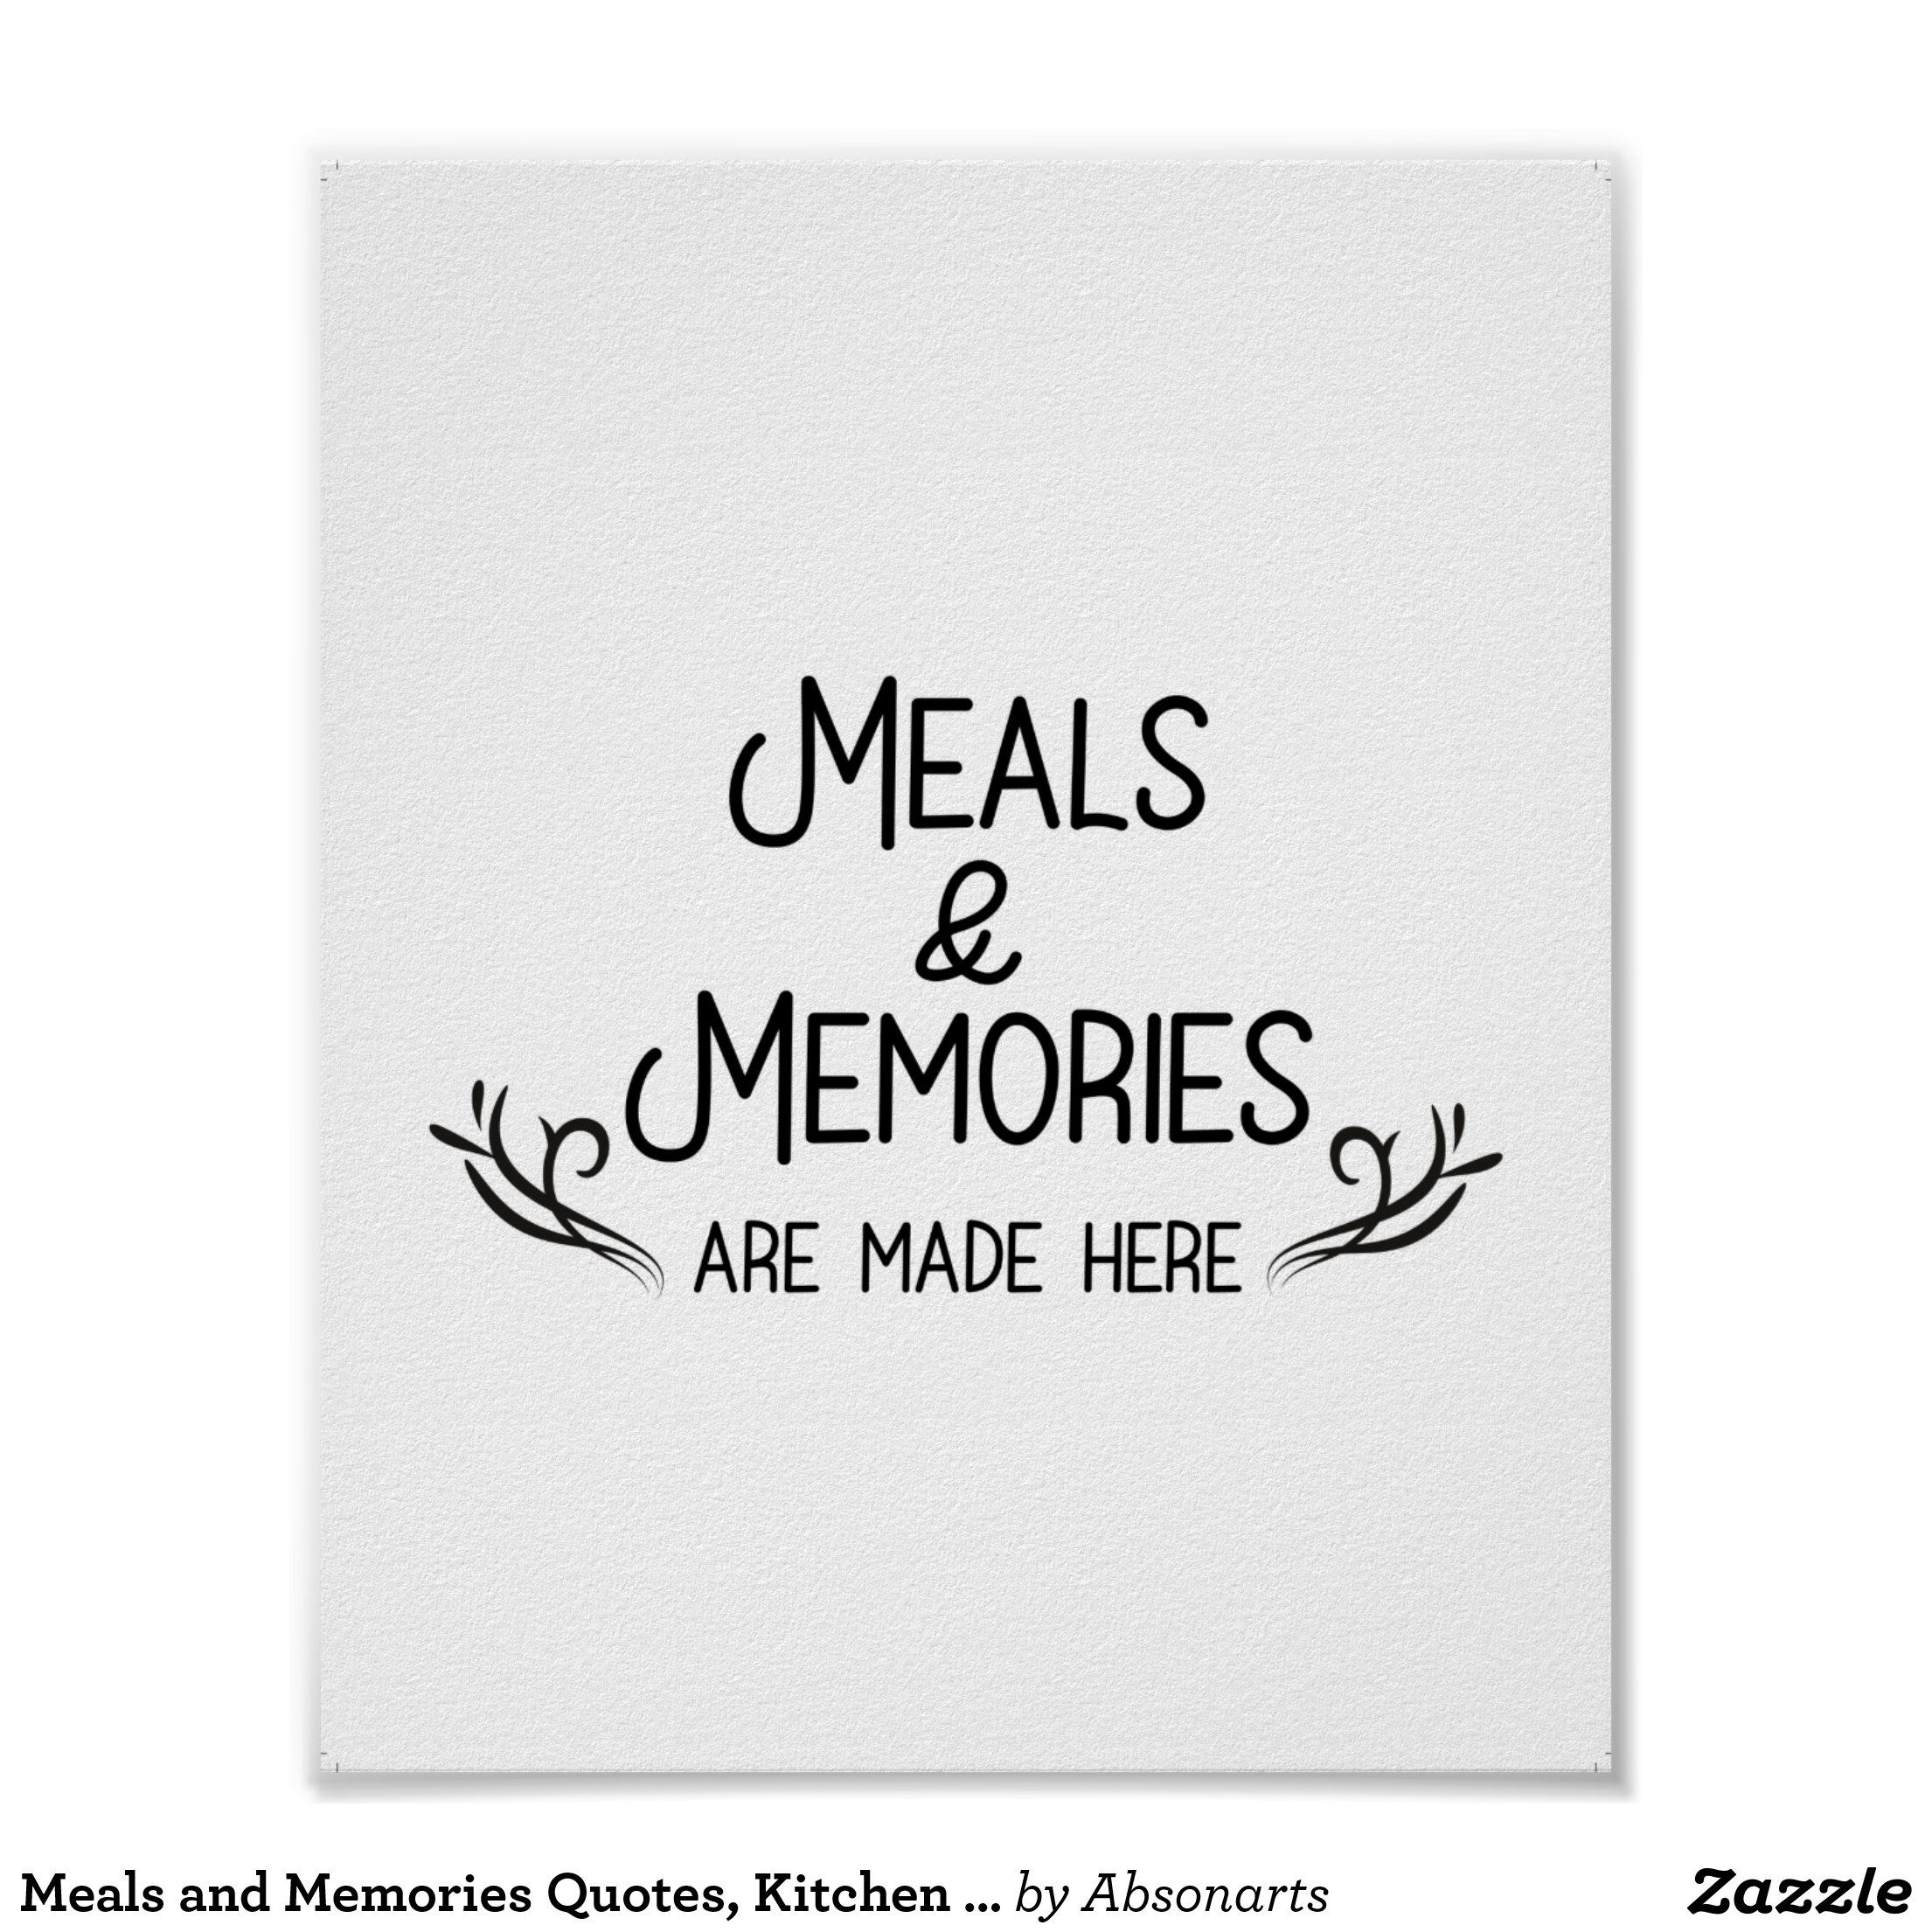 Meals And Memories Quotes Kitchen Quotes Poster Zazzle Com In 2021 Restaurant Quotes Kitchen Quotes Memories Quotes